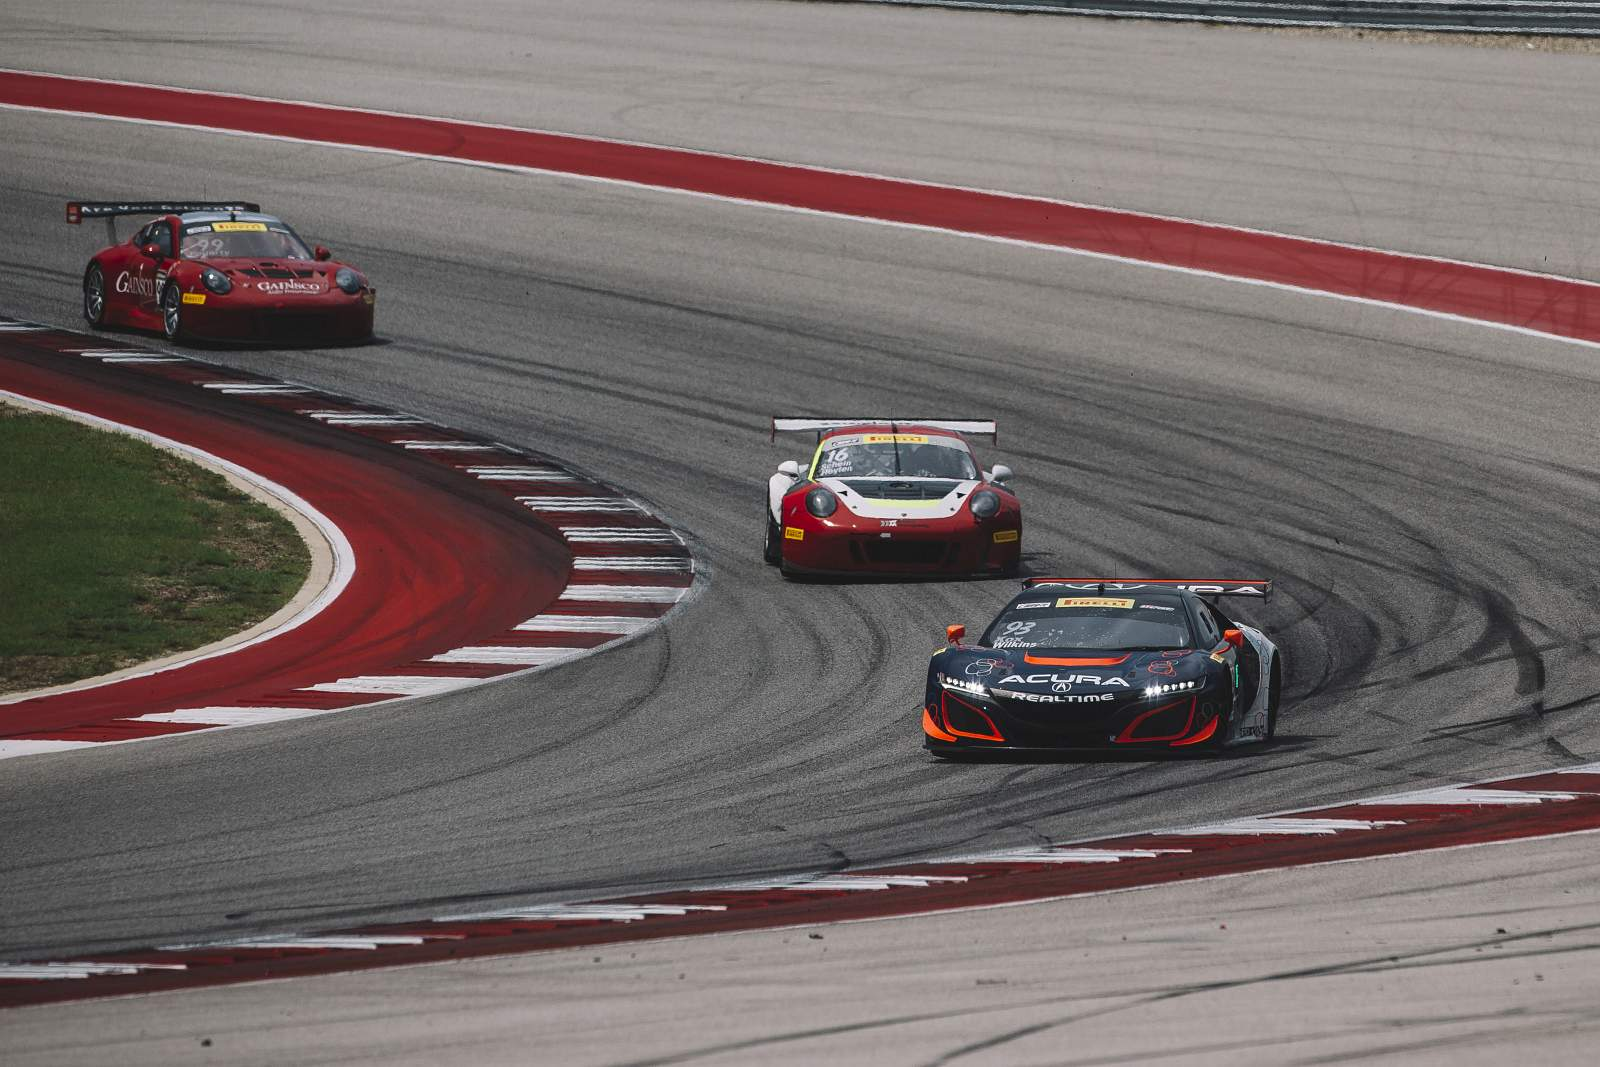 peter-kox-realtime-racing-pirelli-world-challenge-cota--034